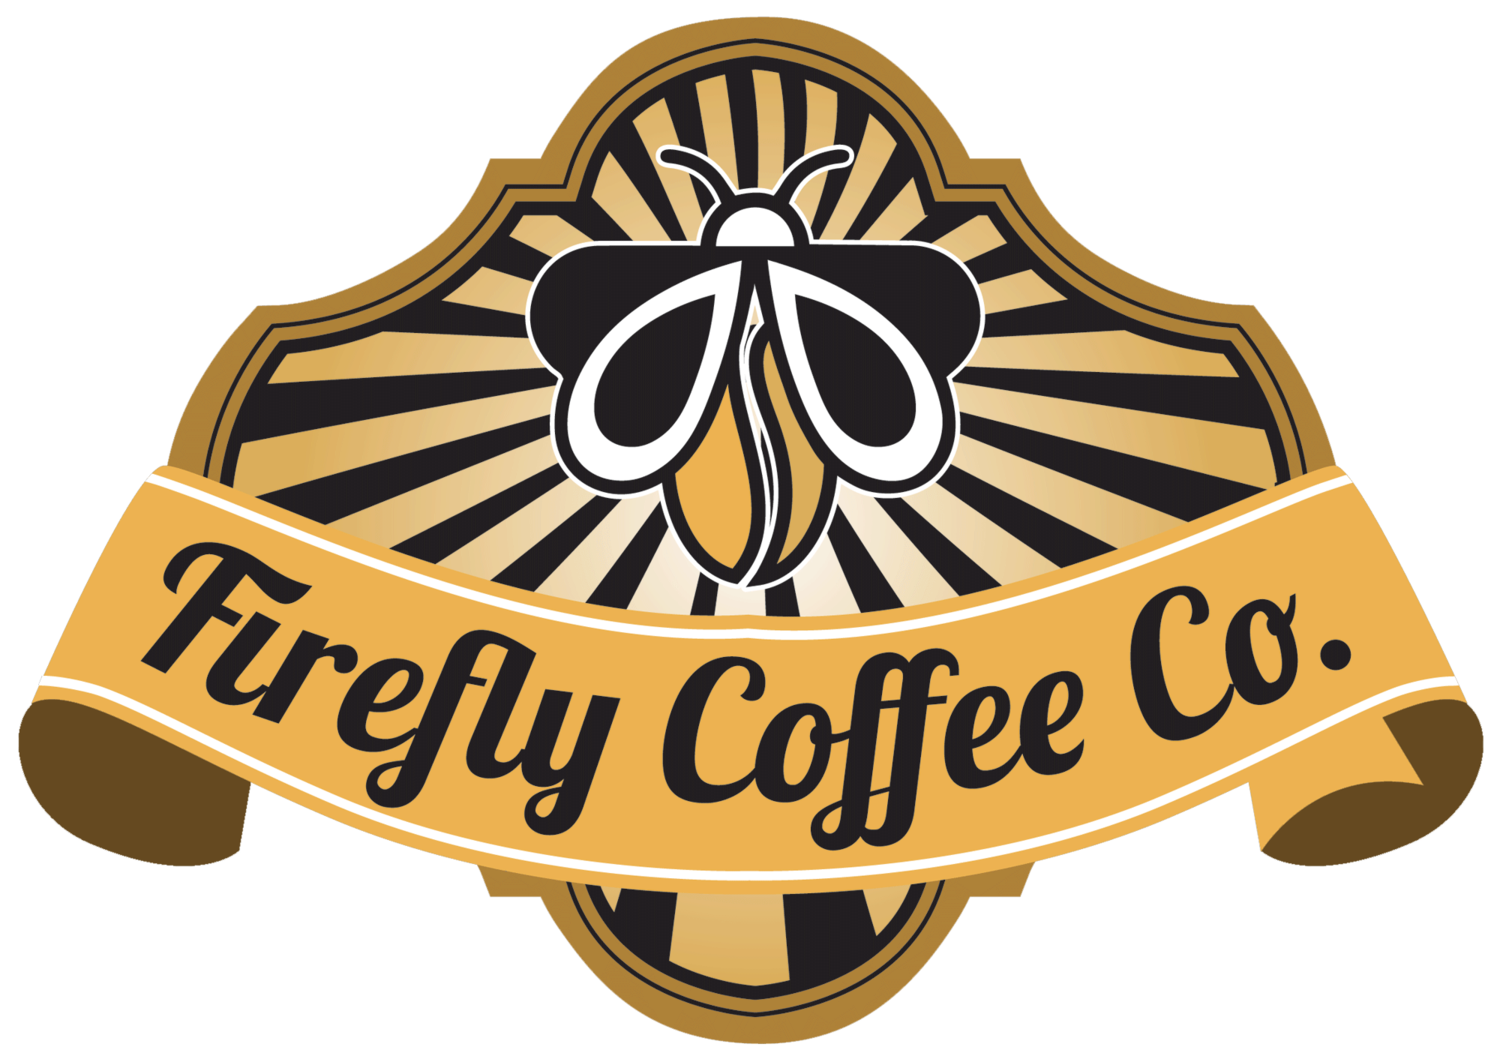 South Metro Coffee Shop | Firefly Coffee Company